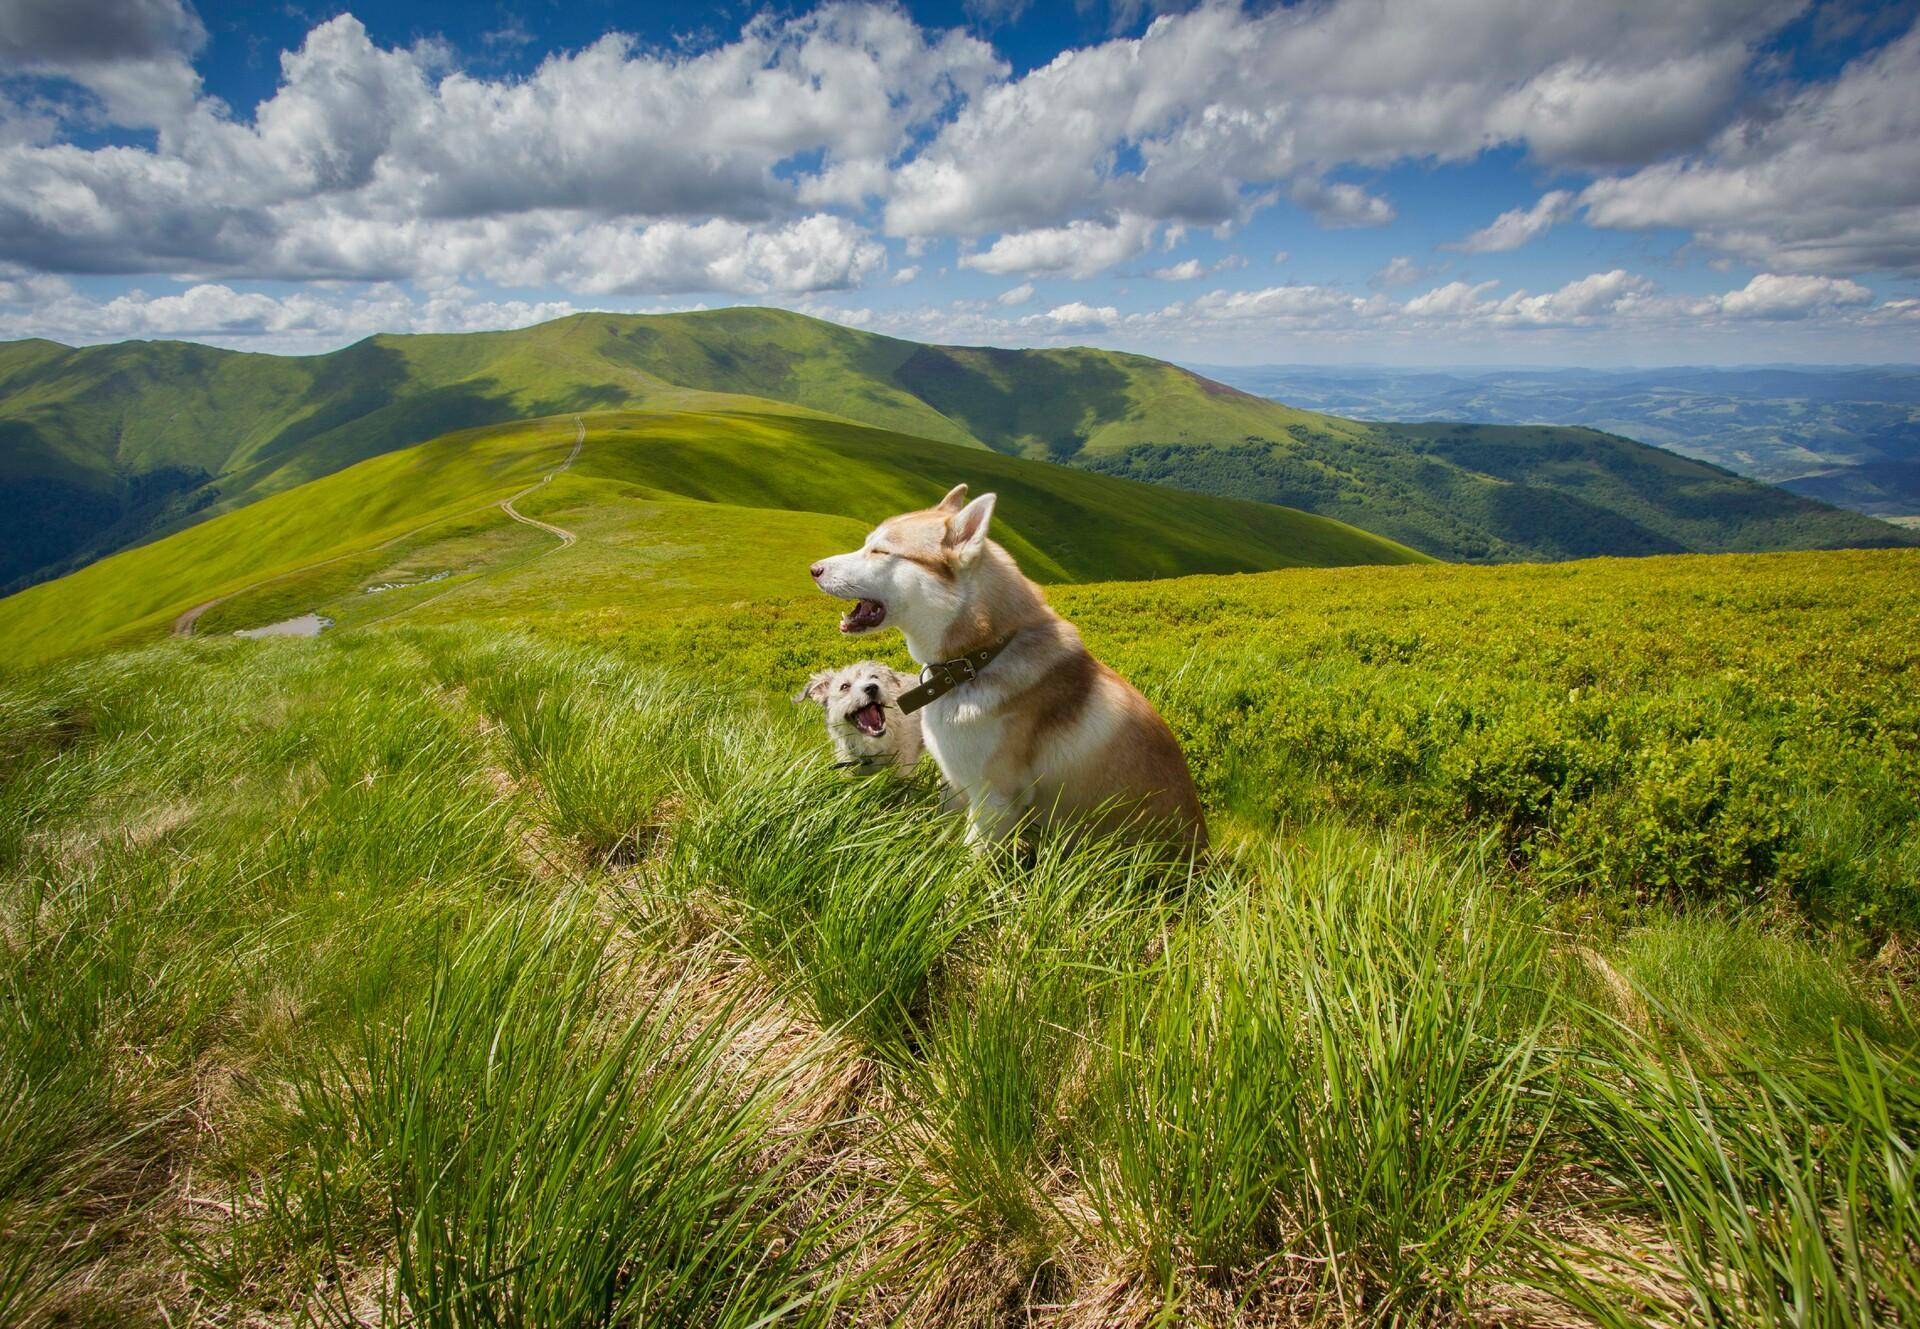 What do dogs enjoy doing on holiday?